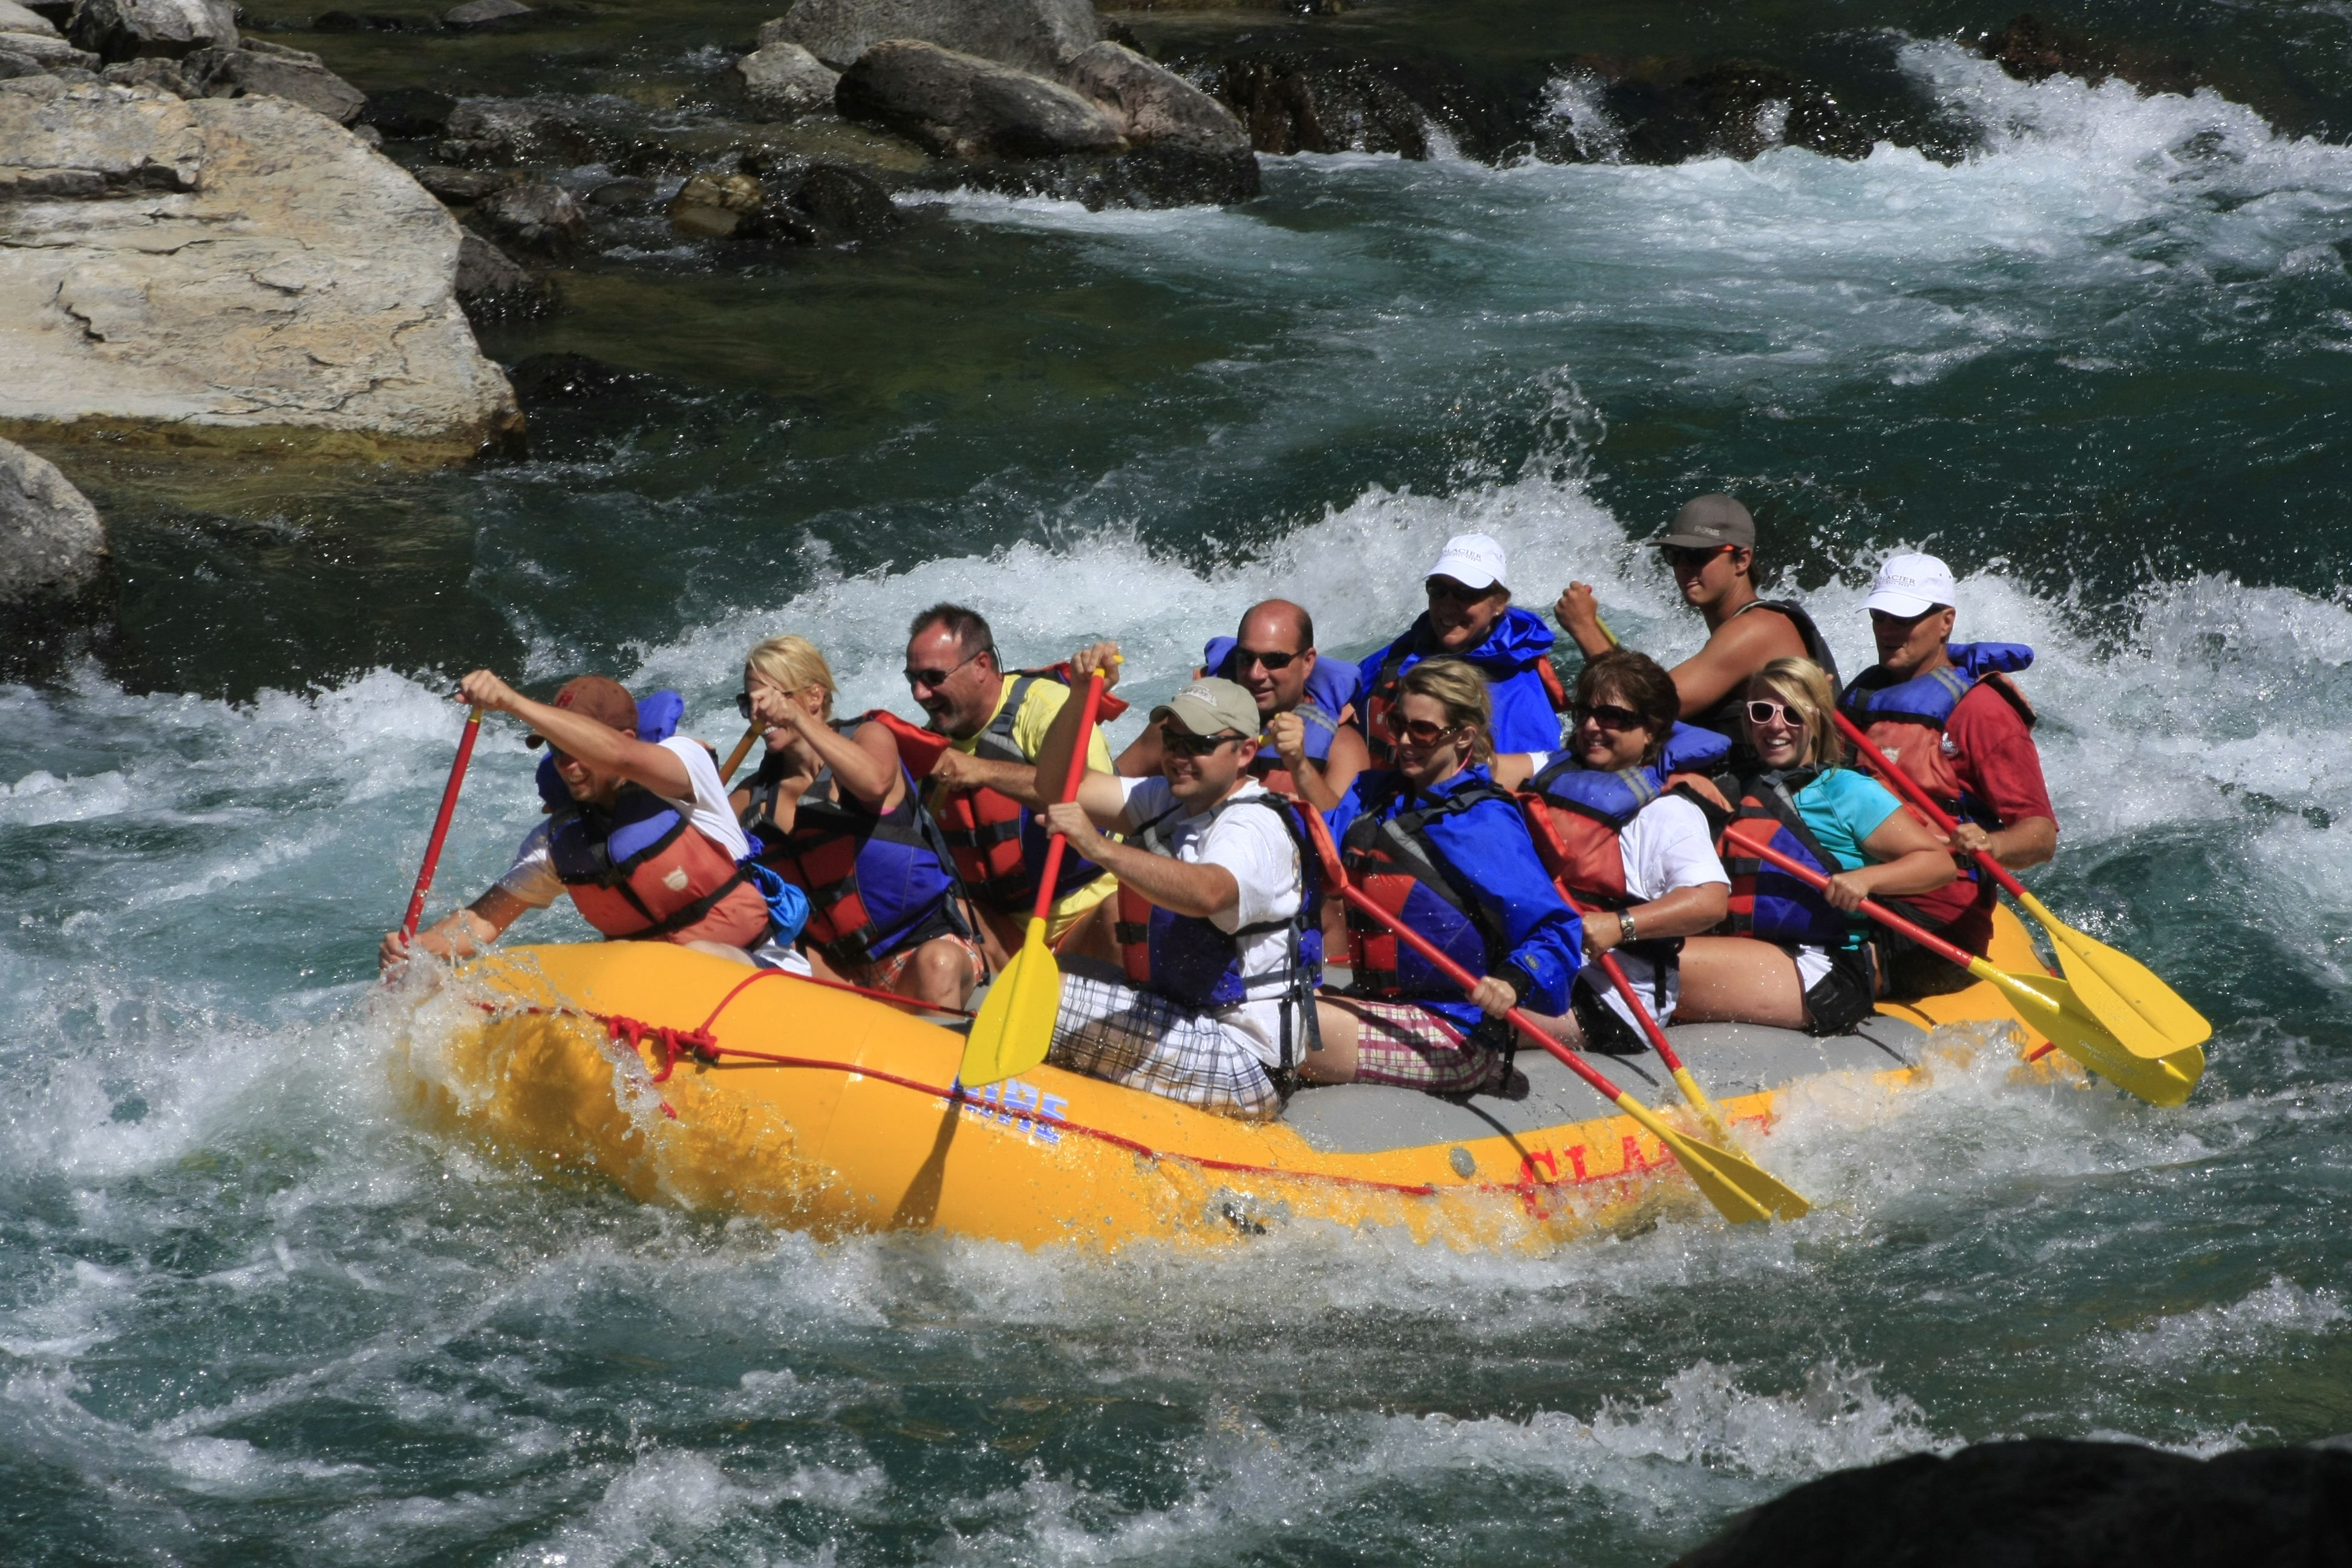 White Water Rafting Colorado River Near Las Vegas